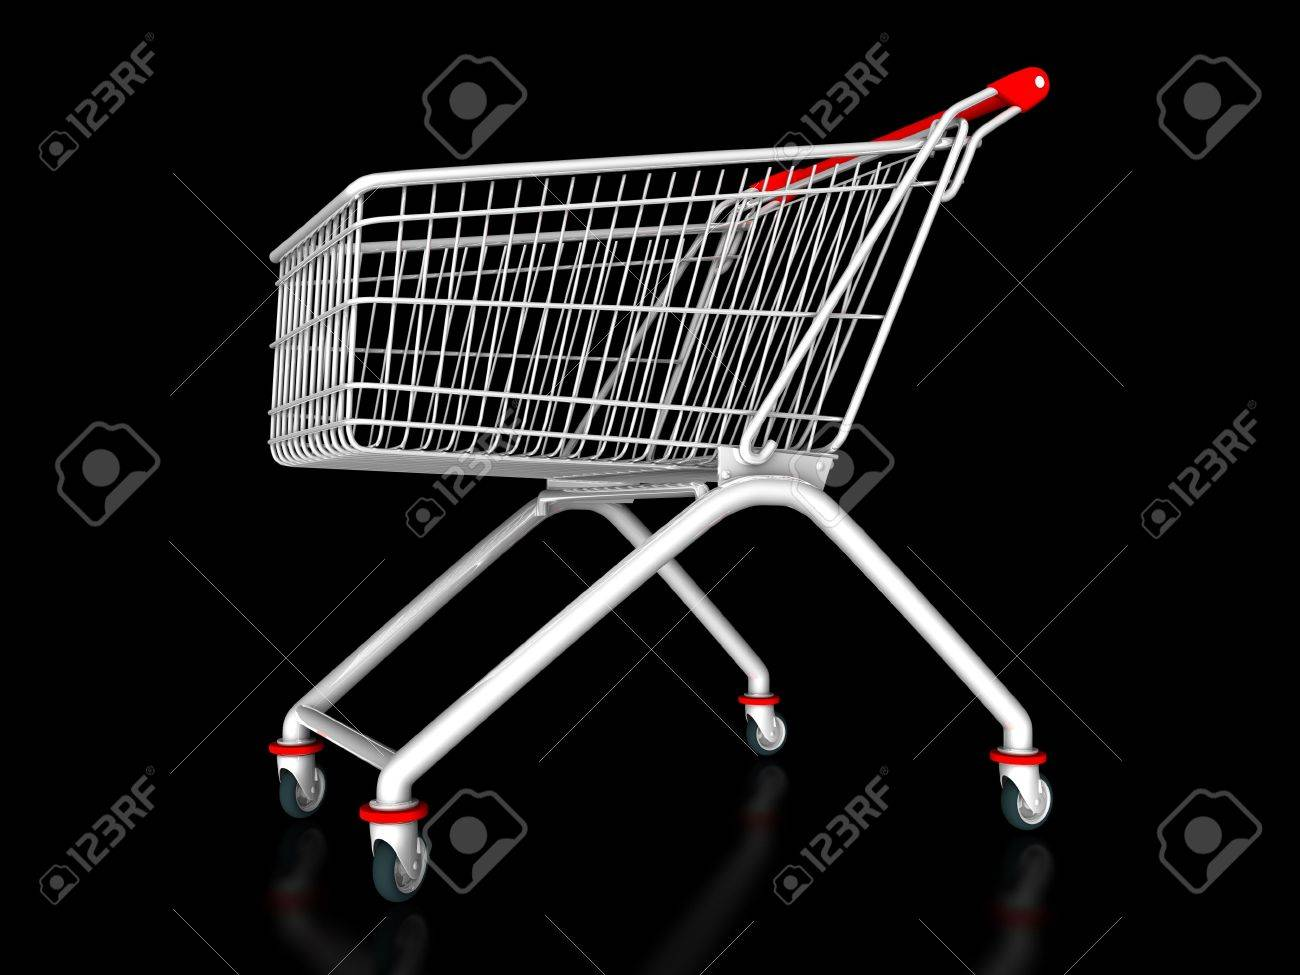 3D illustration of a shopping cart on a black background Stock Photo - 6726702